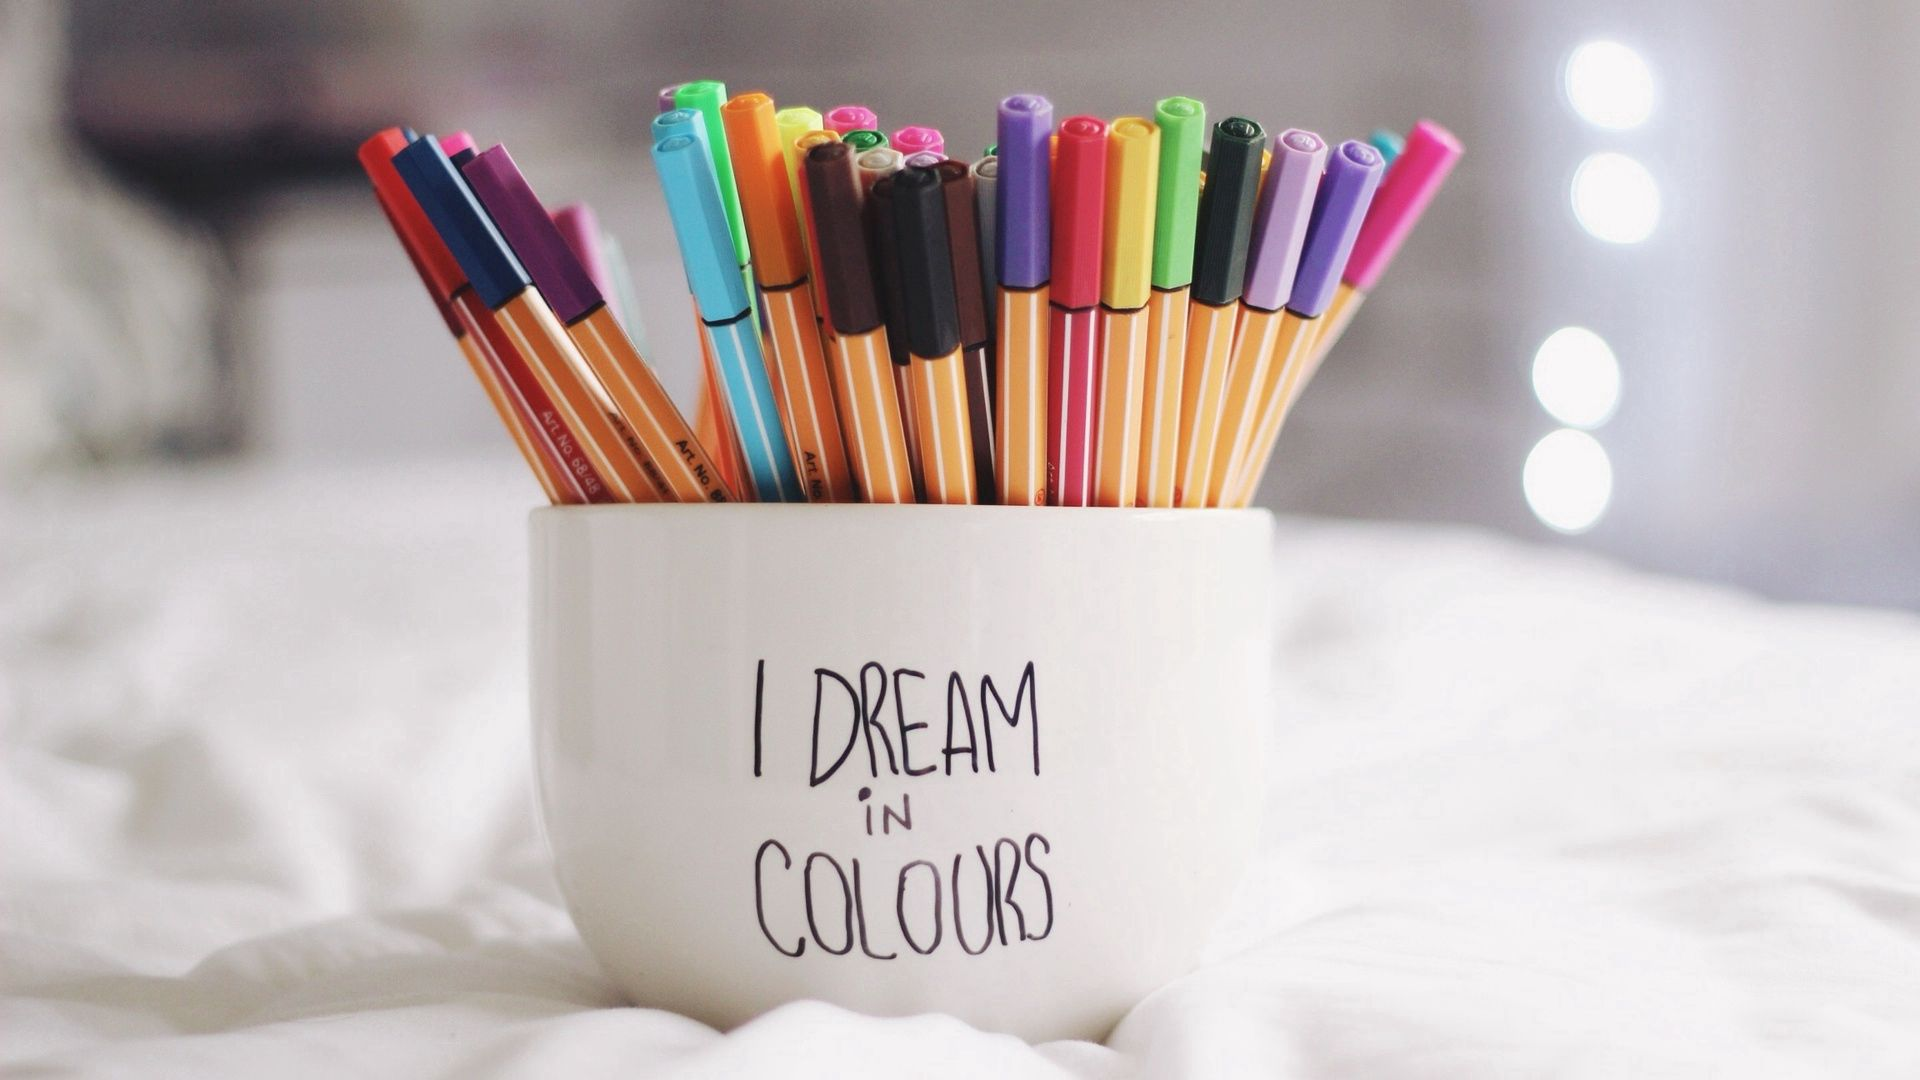 135610 download wallpaper Words, Multicolored, Motley, Cup, Pens, Handles, Dreams, Reverie screensavers and pictures for free